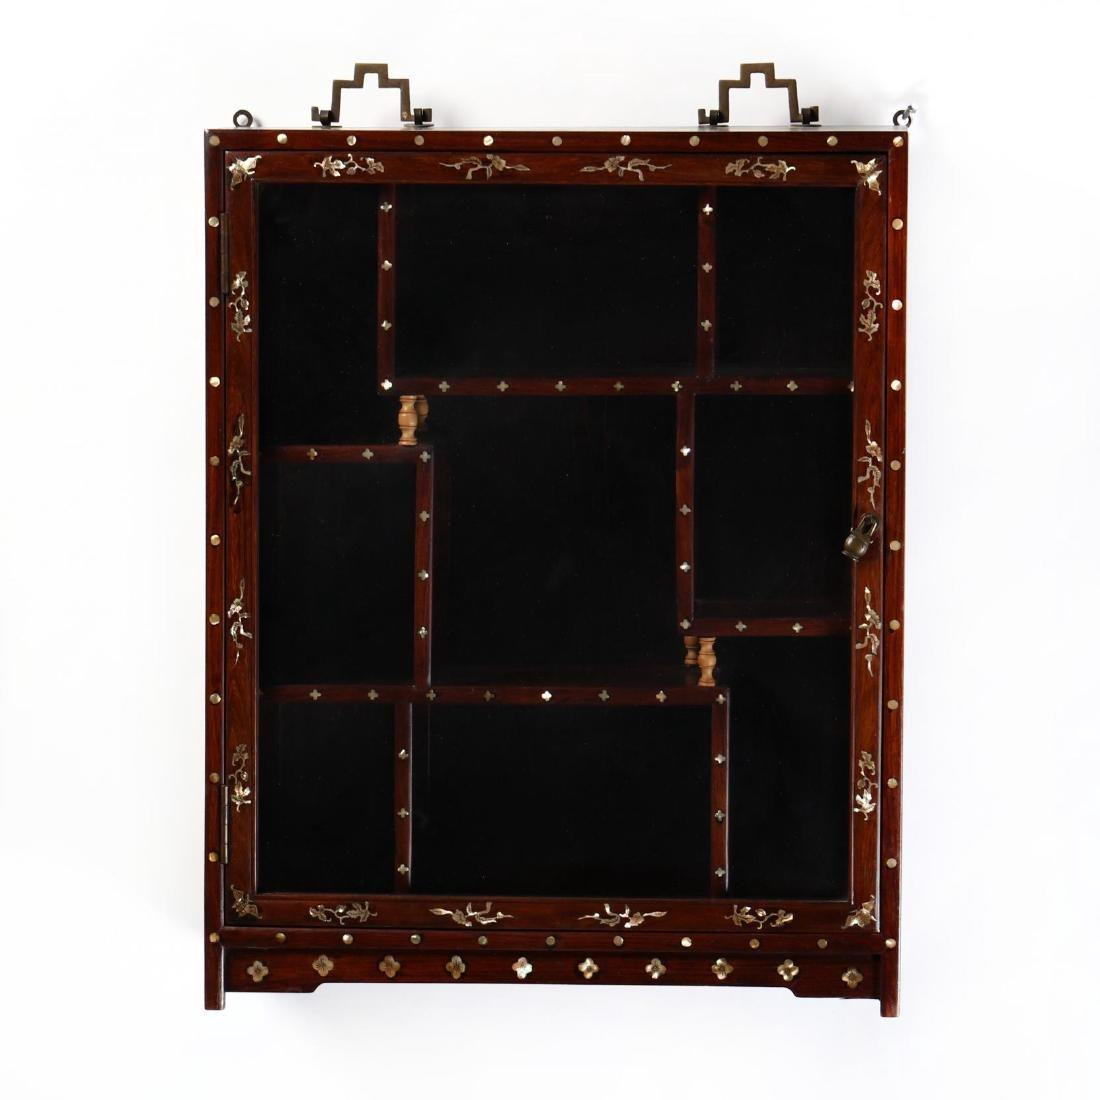 Chinese Carved Hardwood and Inlaid Display Cabinet